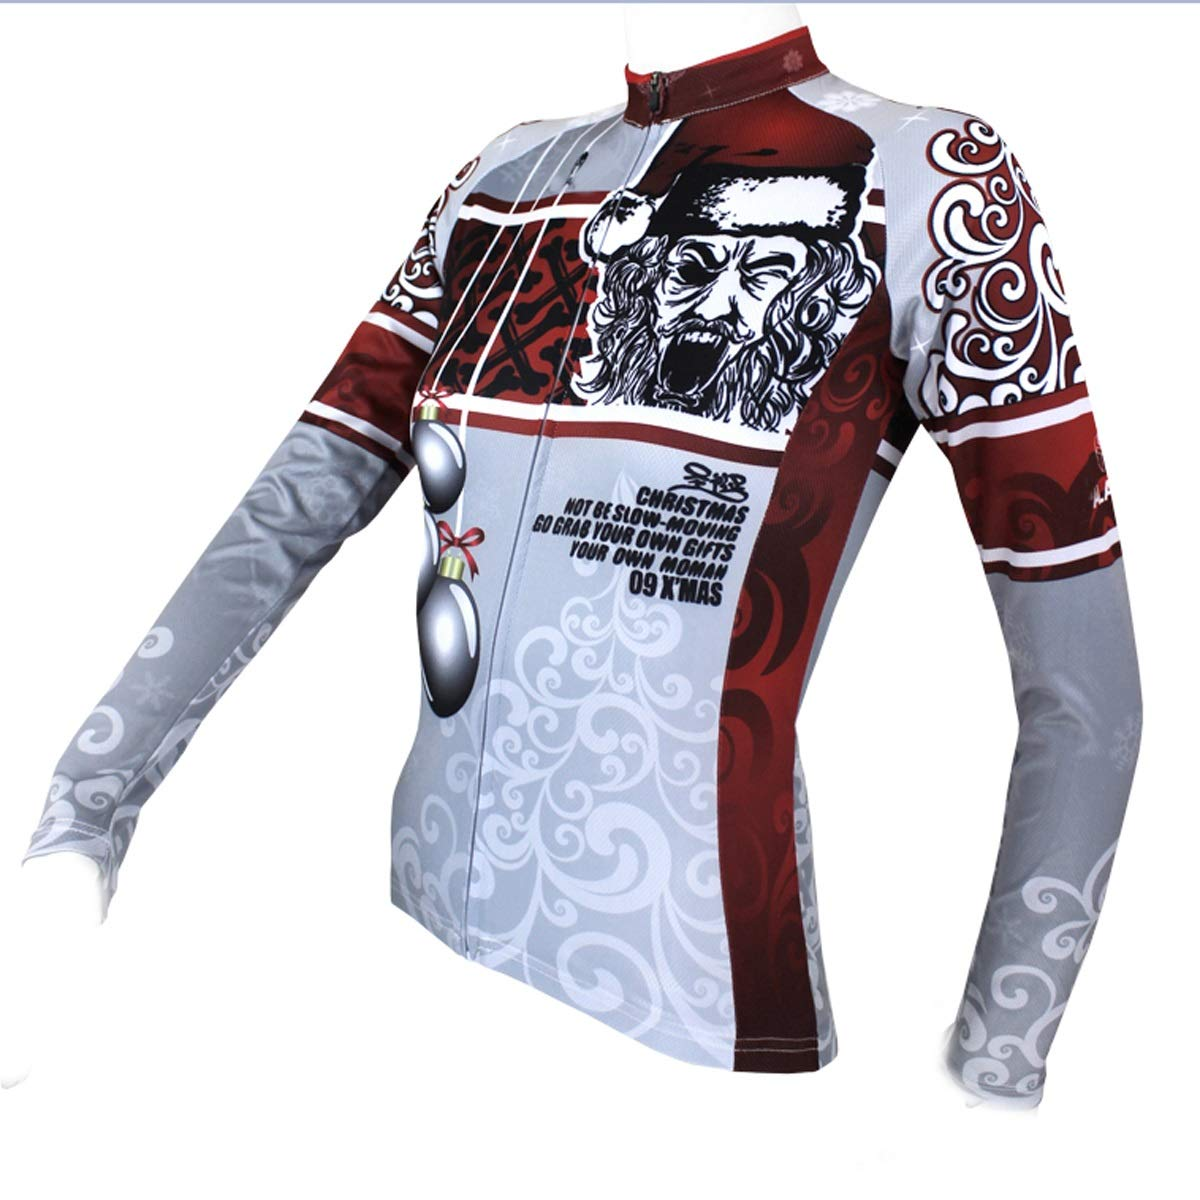 Santa Claus Pattern Riding Sports Herren- und Damenbekleidung Quick Dry Bicycle Riding Suit Fahrradtrikot LPLHJD